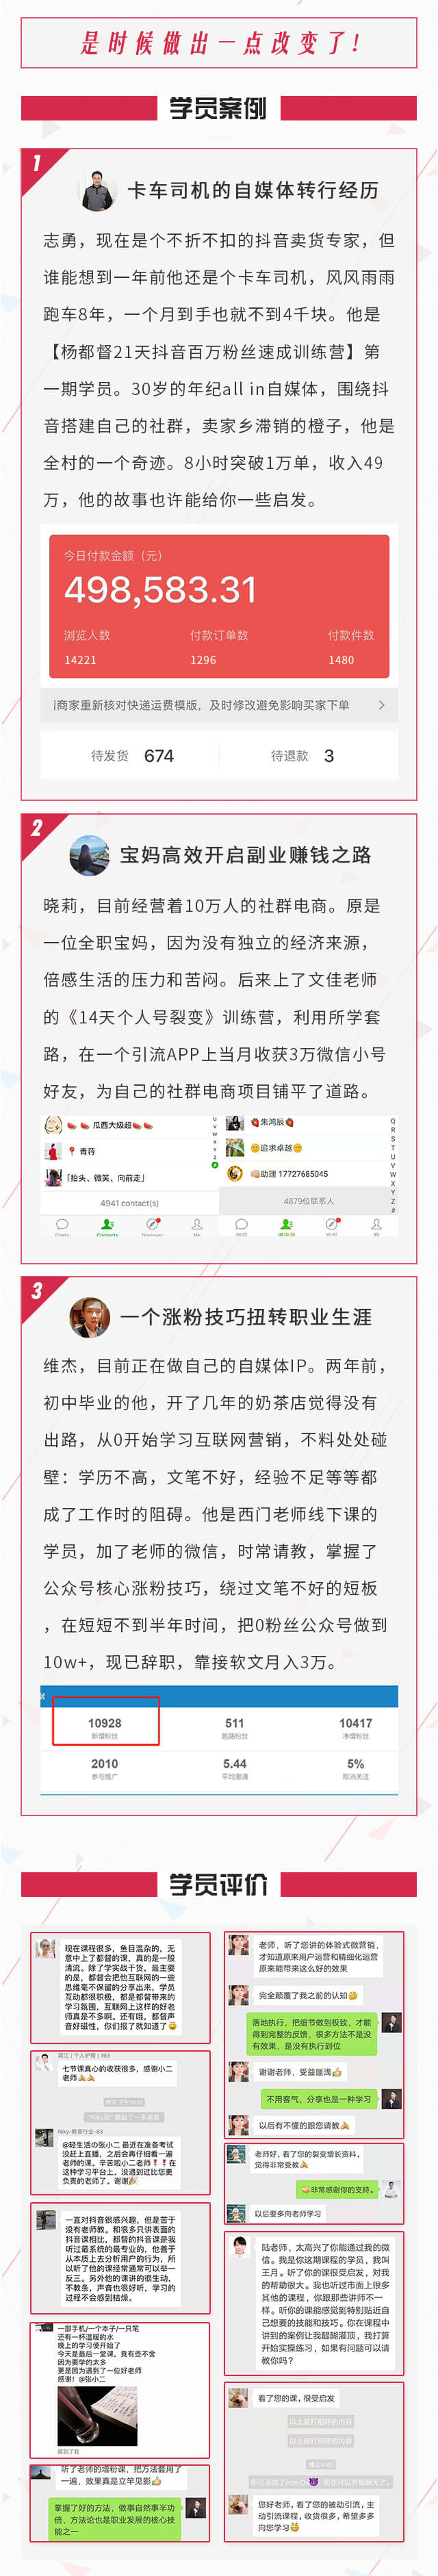 http://img.weike.fm/editor/34786990/97ff159c726eaa2ee3aabf0702b72d21